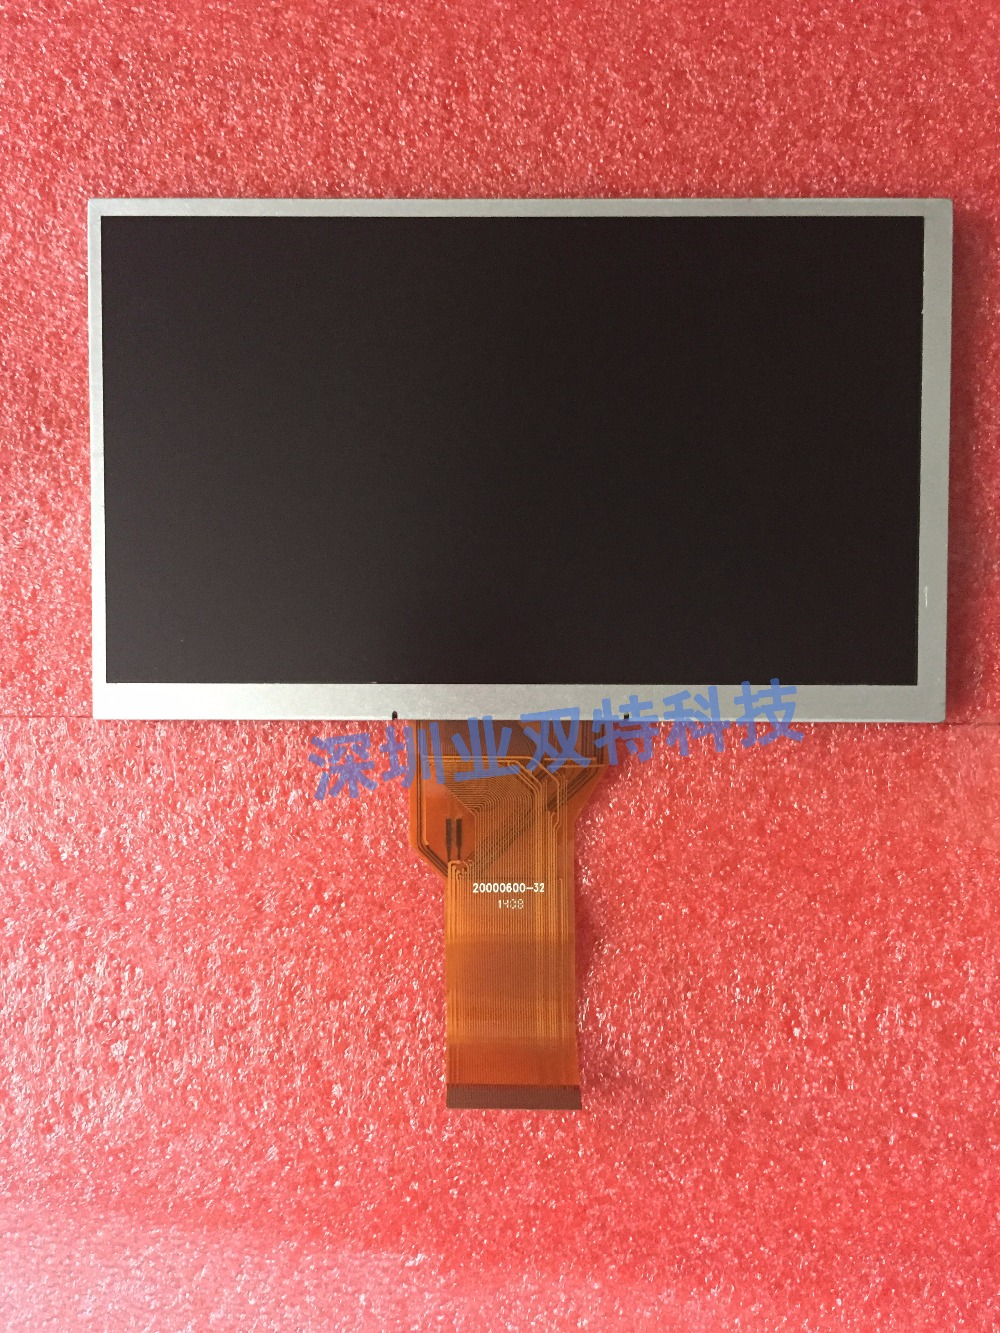 free shipping original new 7 inch LCD screen AT070TN92 AT070TN94 industrial touch screen original free shippat056tn52 v 3 innolux lcd screen 5 6 inch 4 3 original properties of the new regulation a digital screen